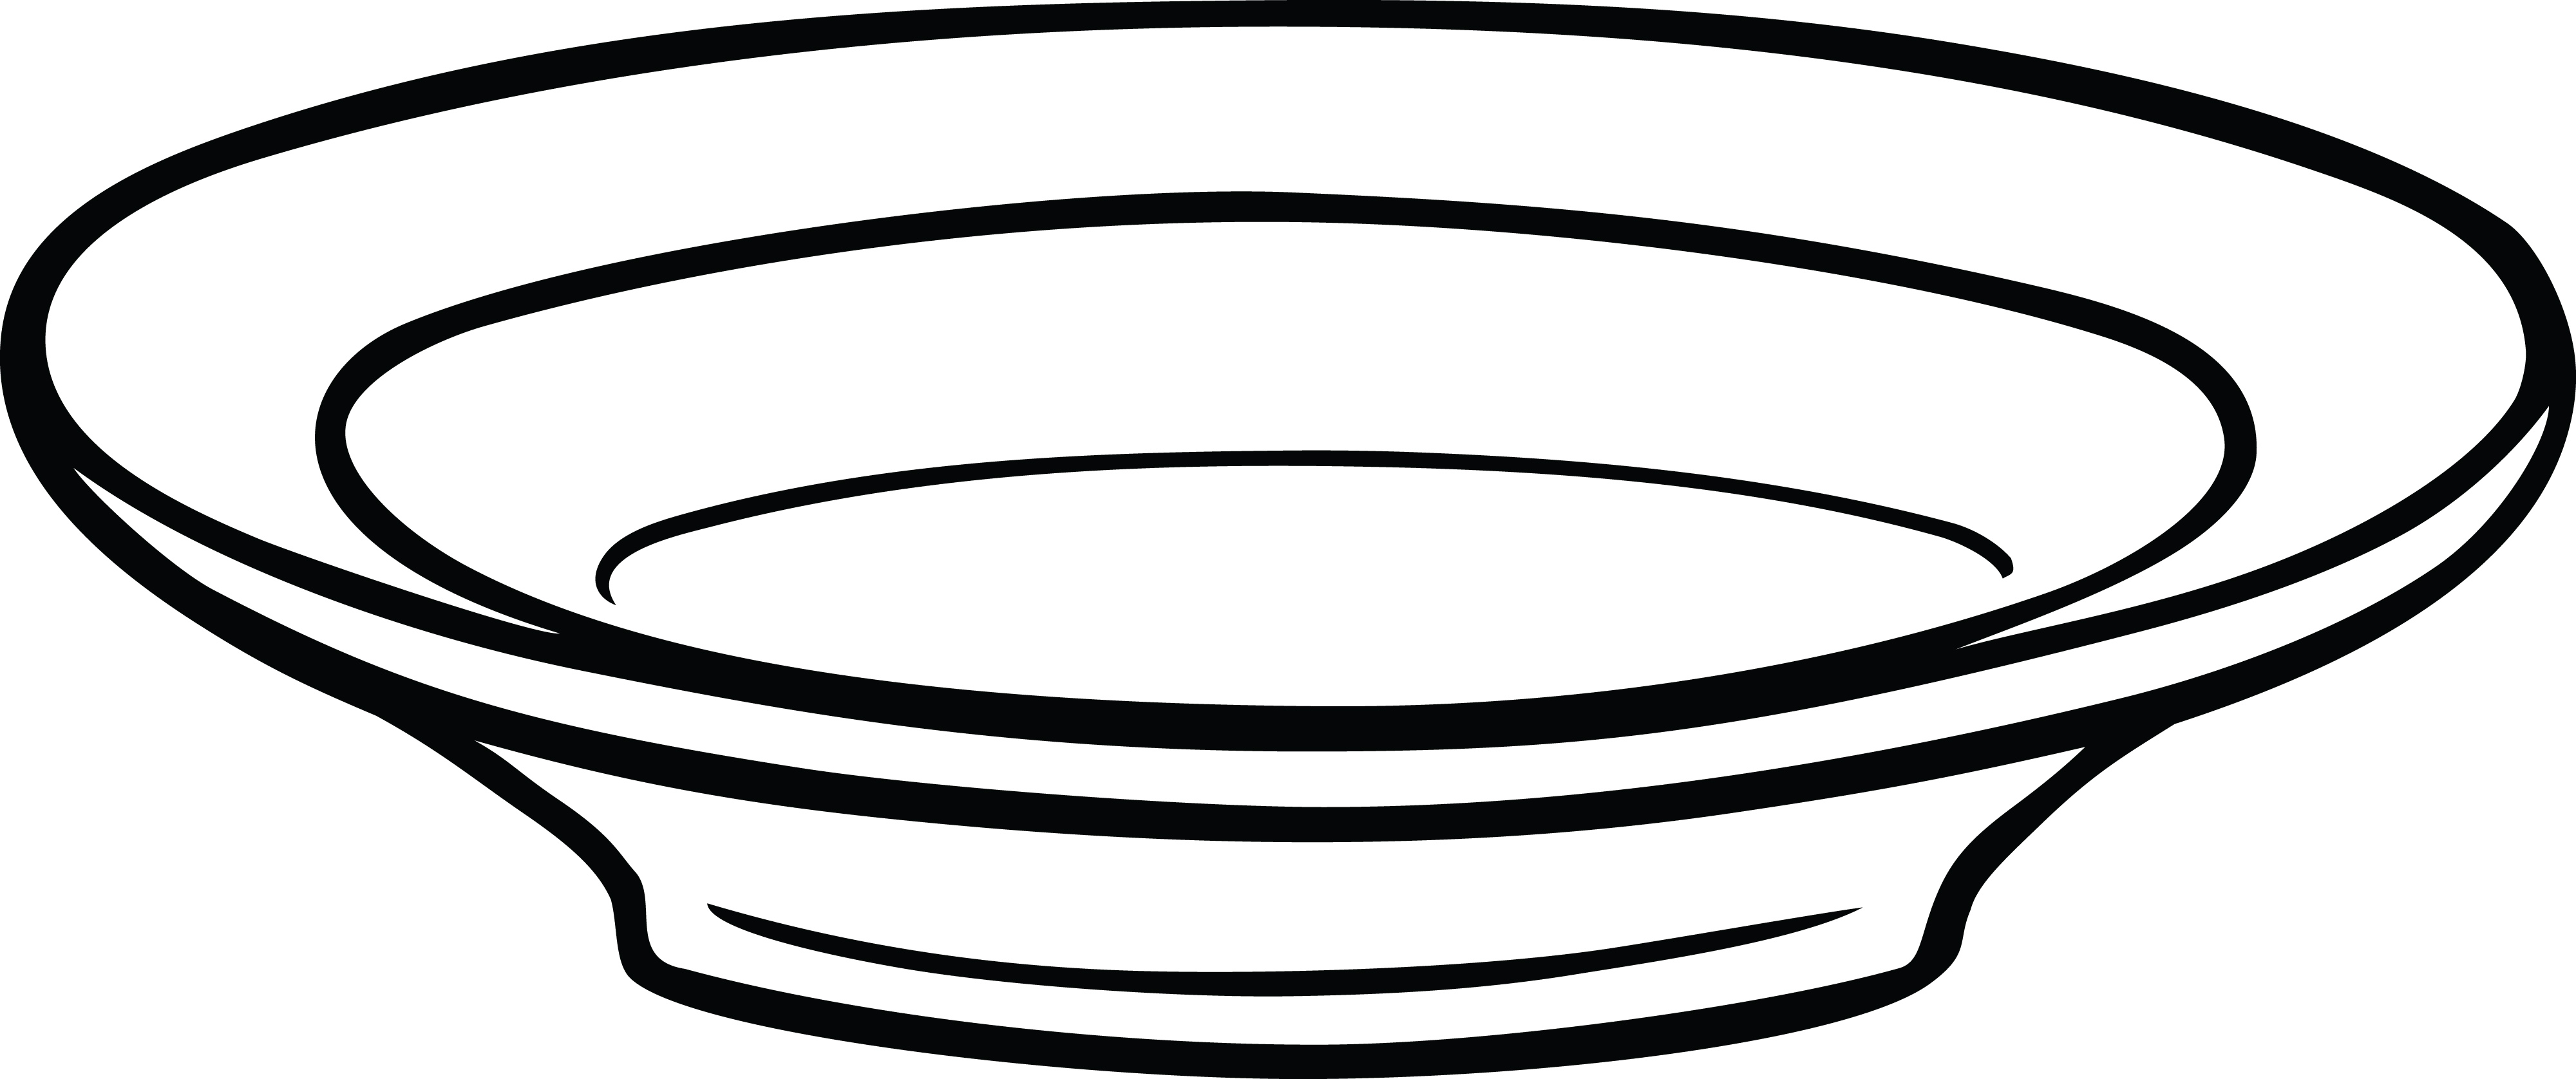 Free Clipart Of A shallow bowl.